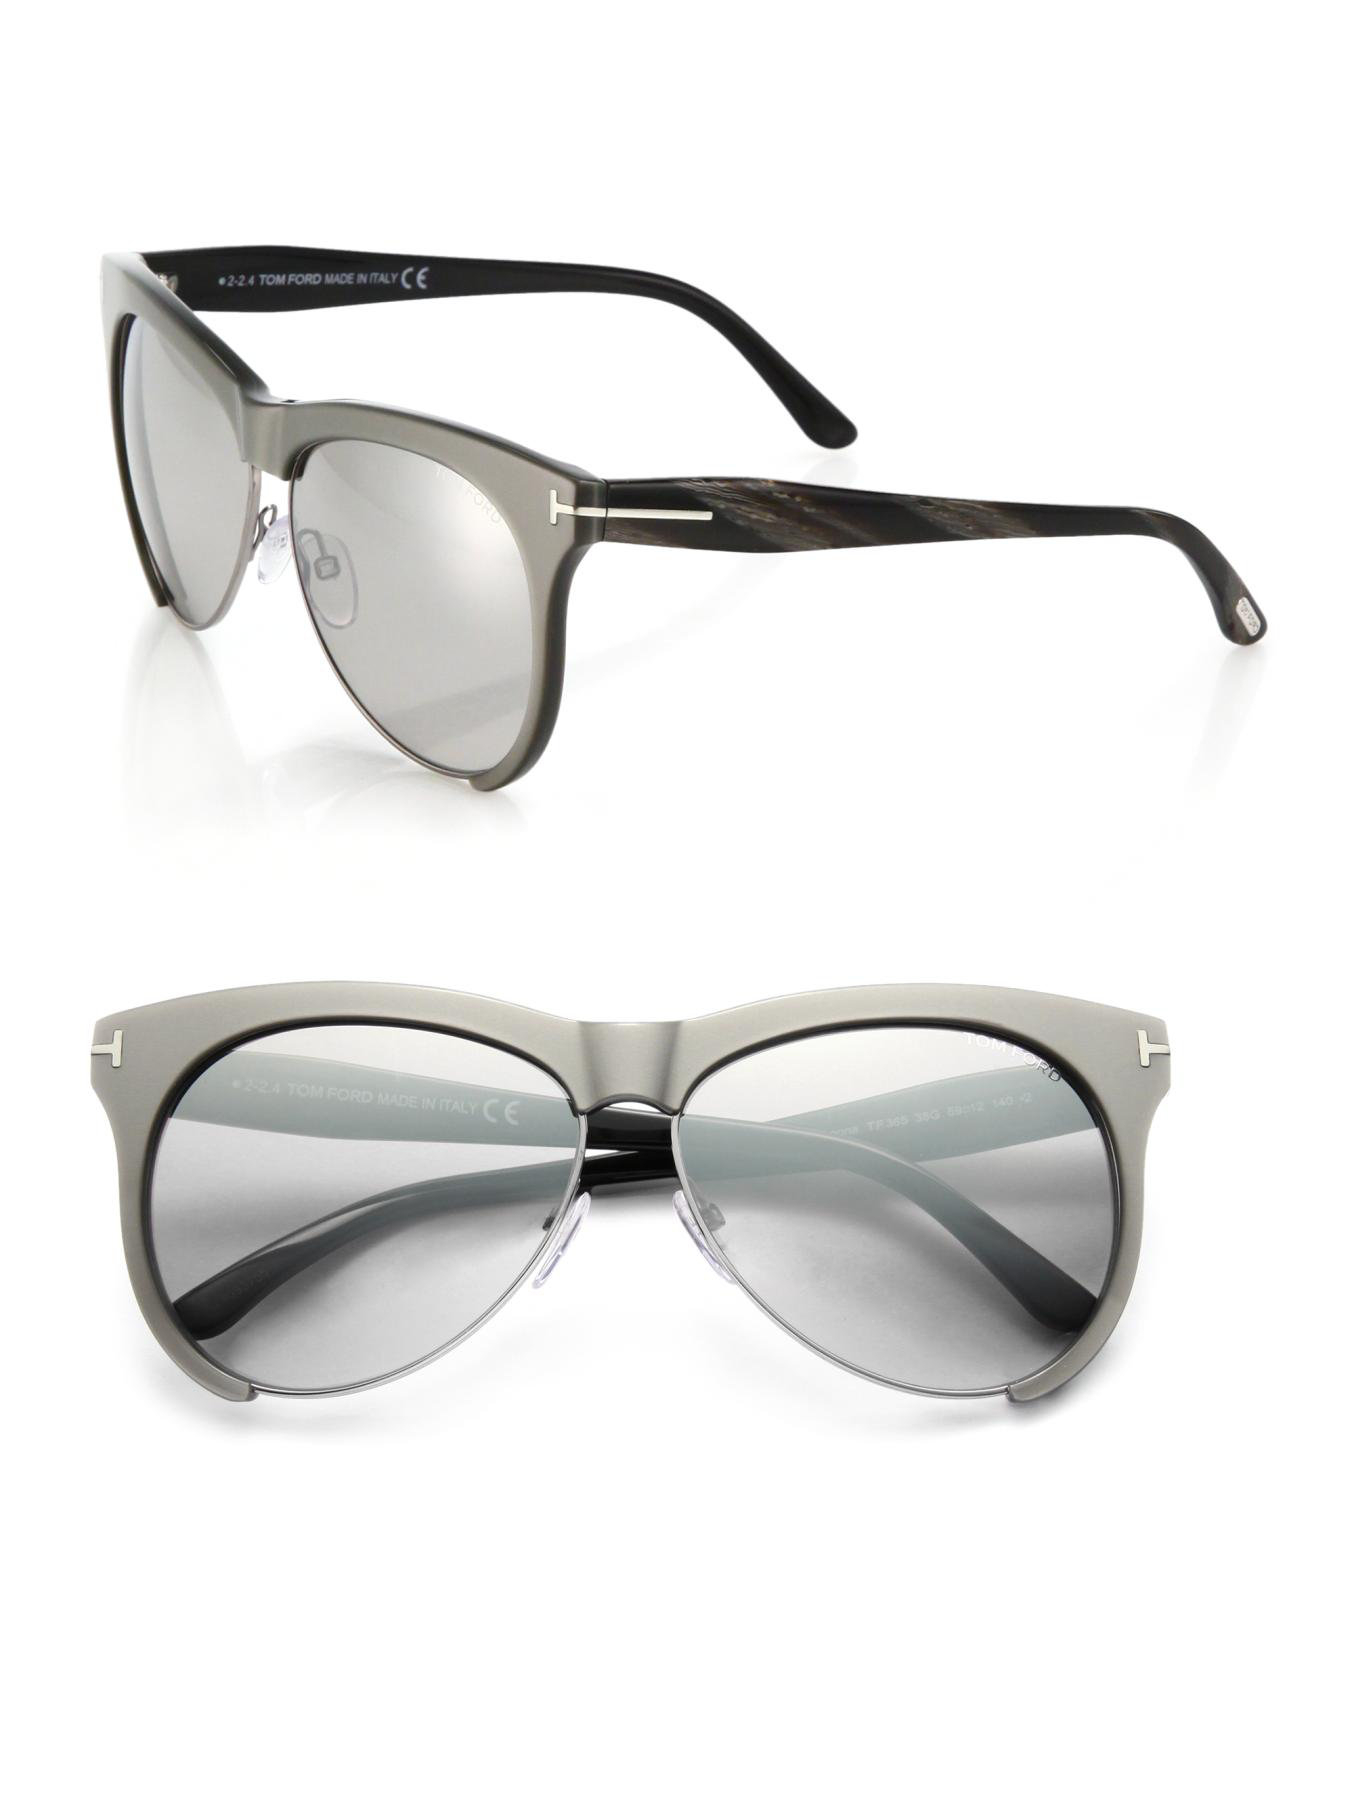 a8c82e1996c9 Lyst - Tom Ford Leona 59mm Aviator Sunglasses in Gray